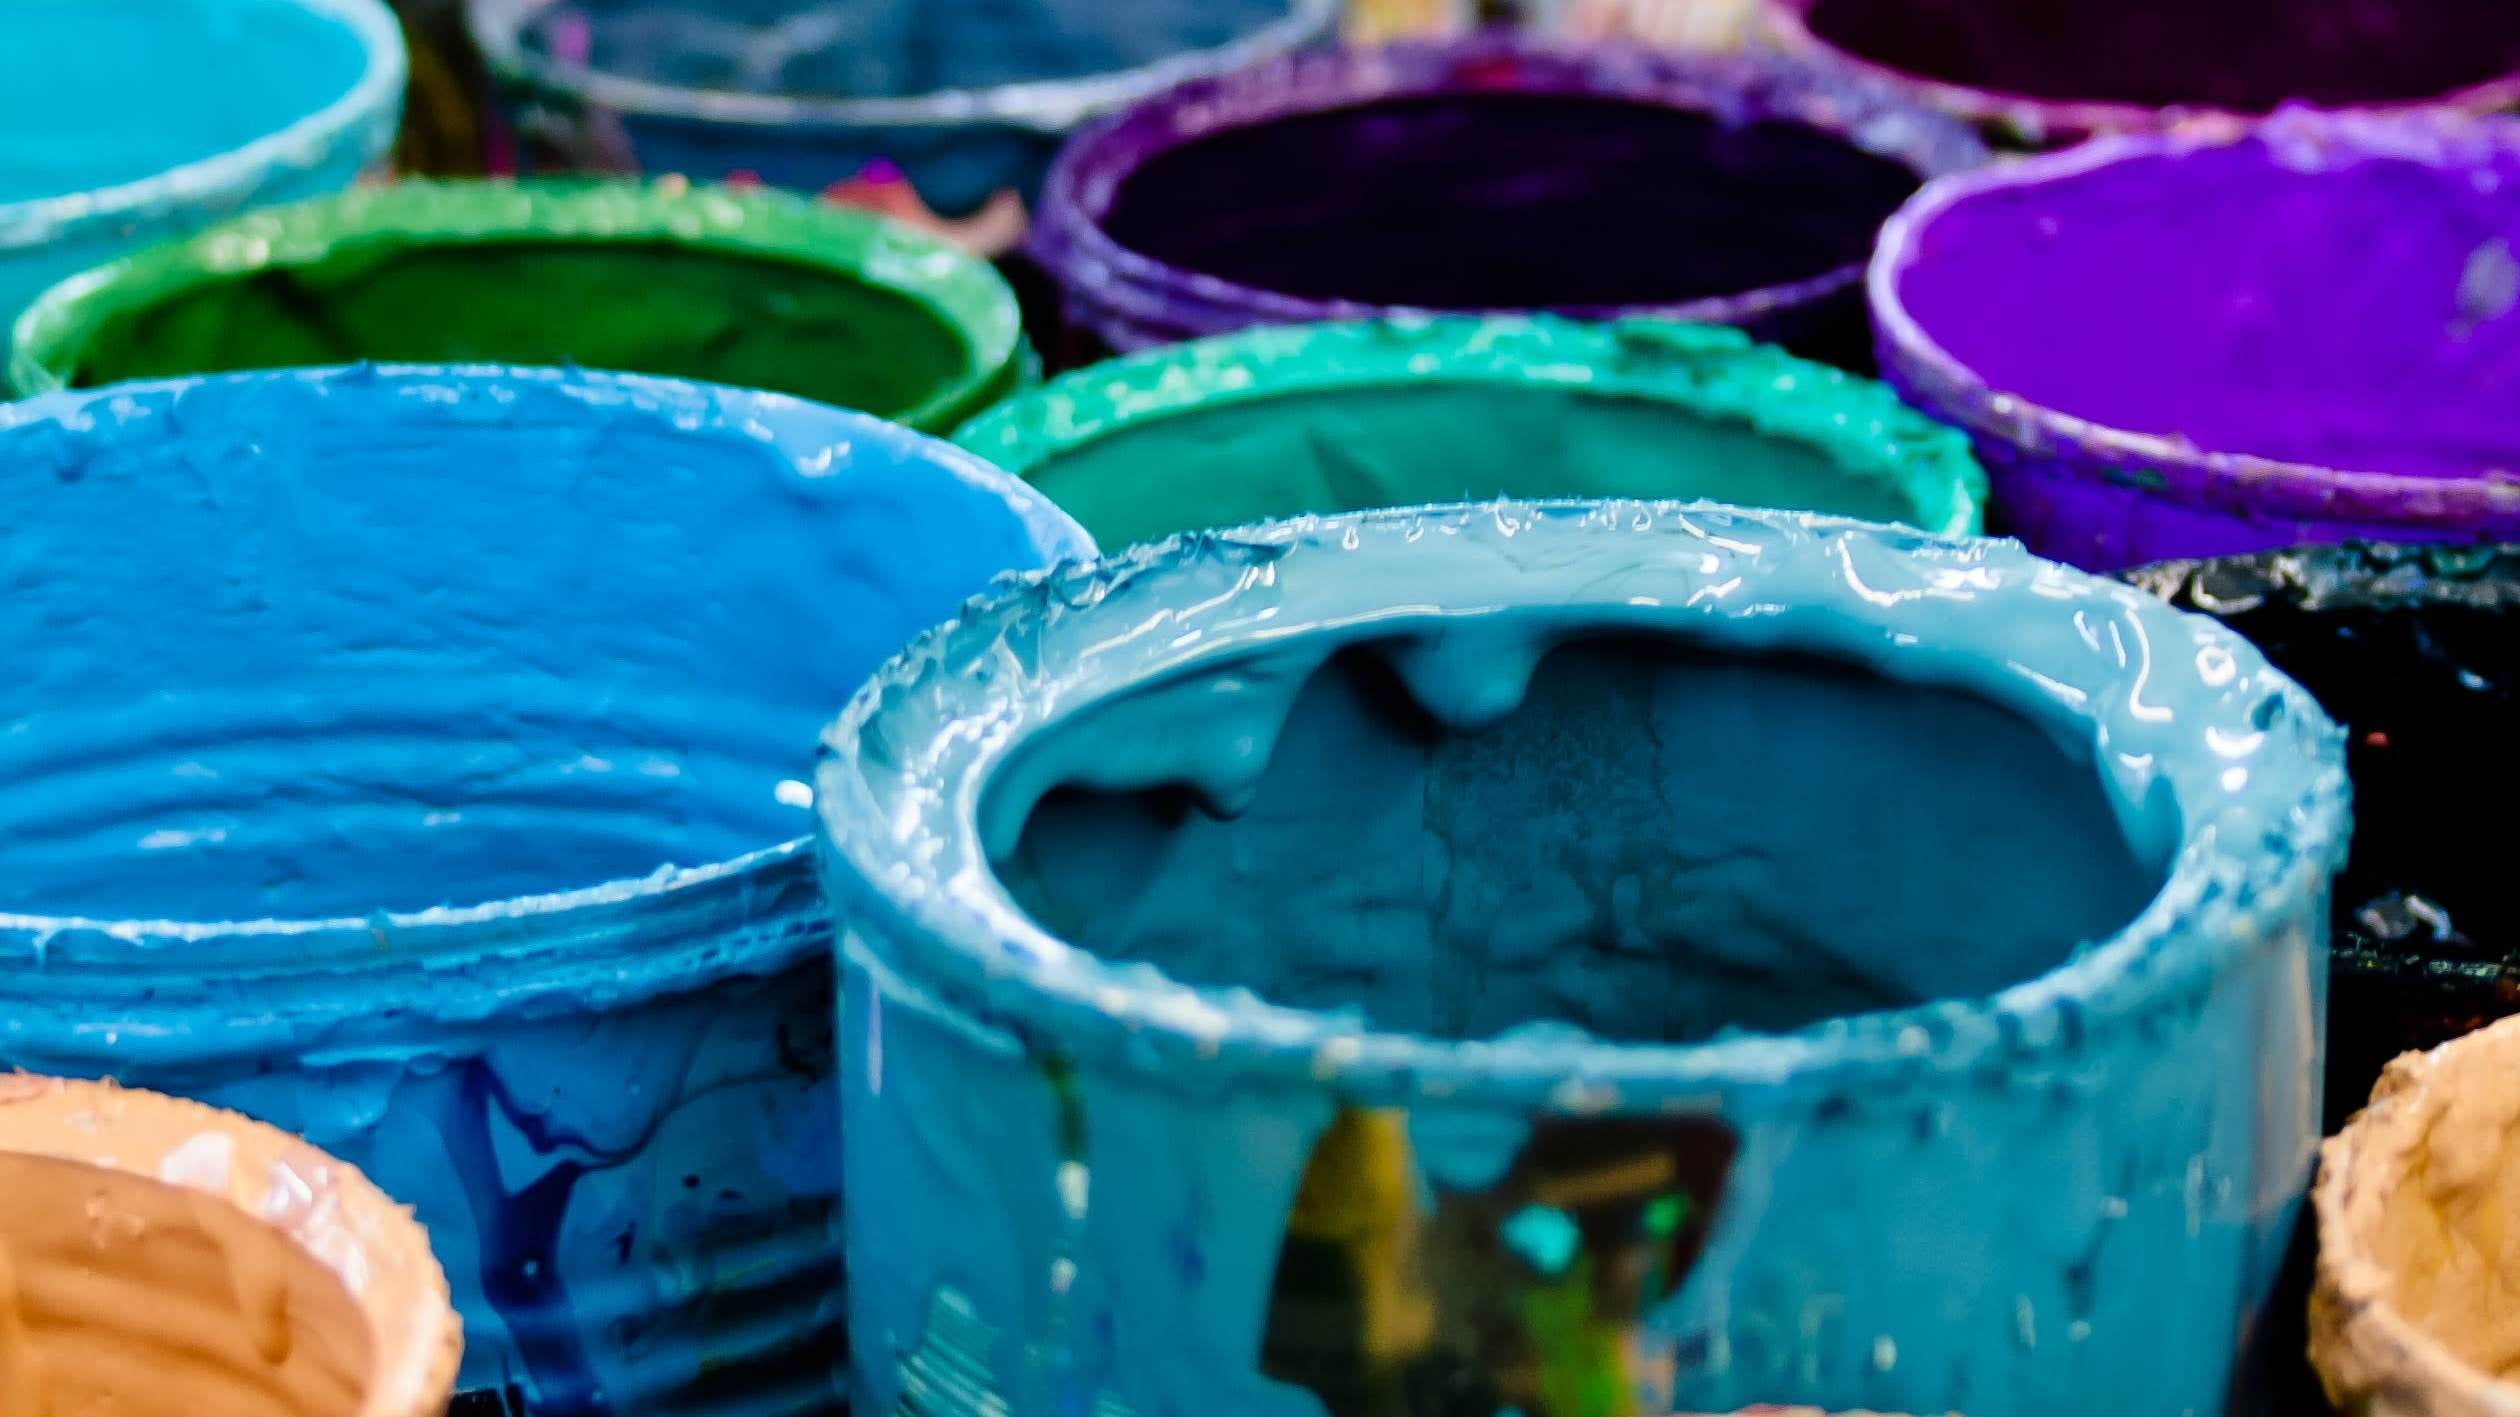 How To Donate Or Dispose Of Your Old Paint